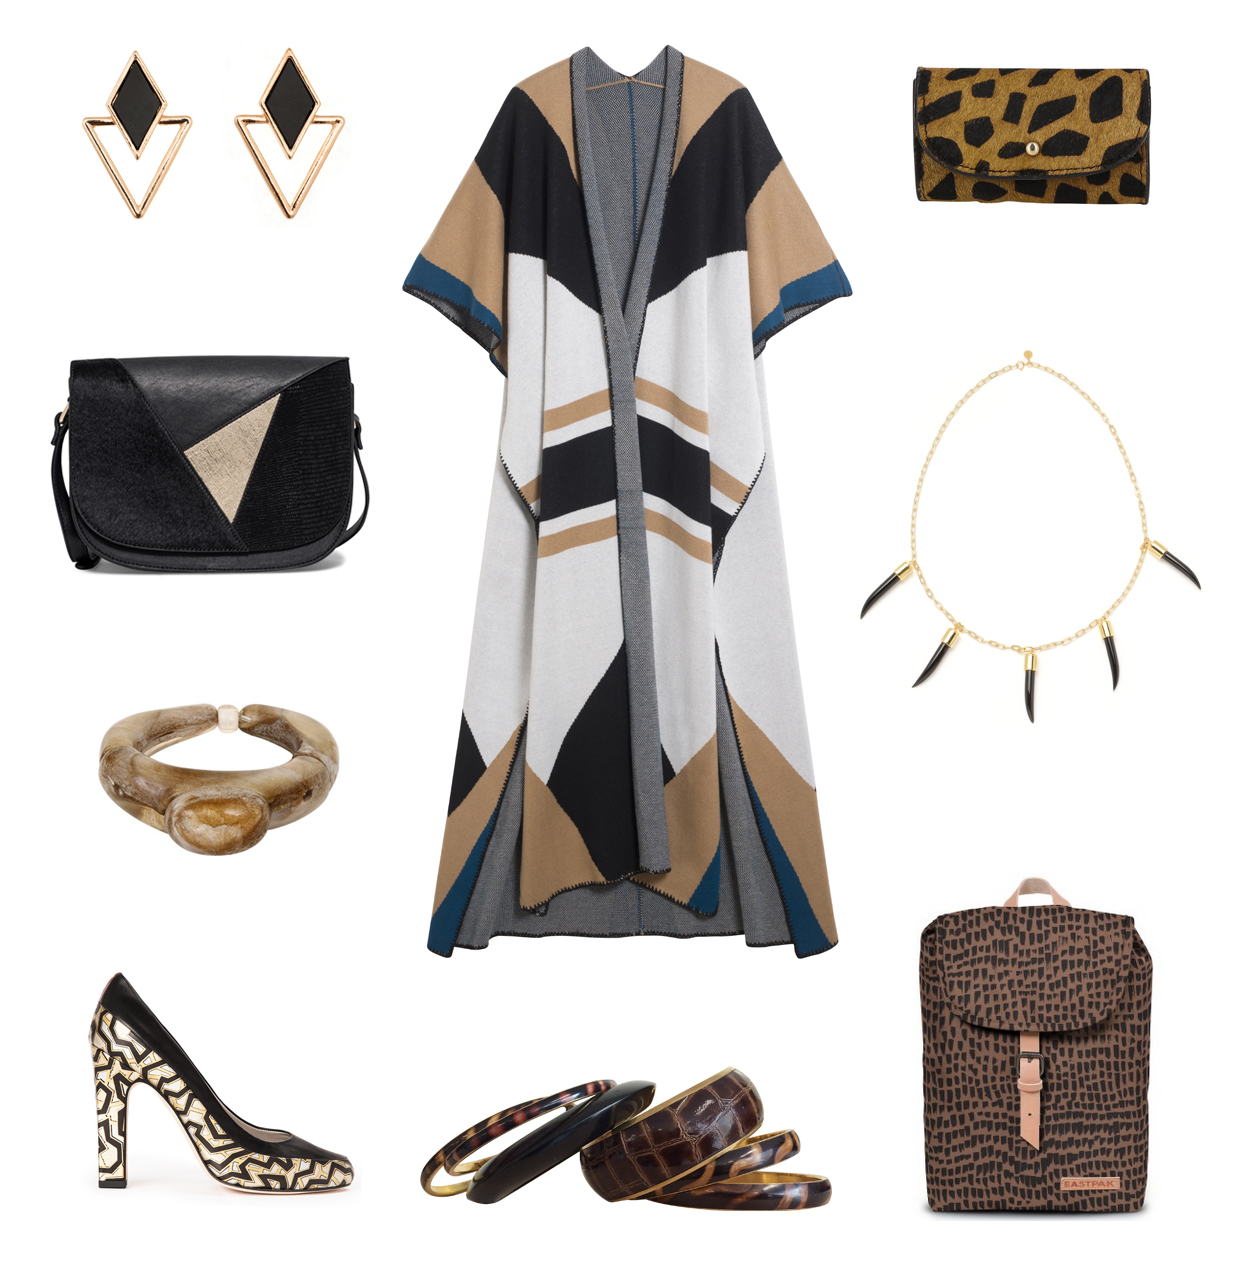 safari-mode-fashion-gold-winter-graphic-etnic-african